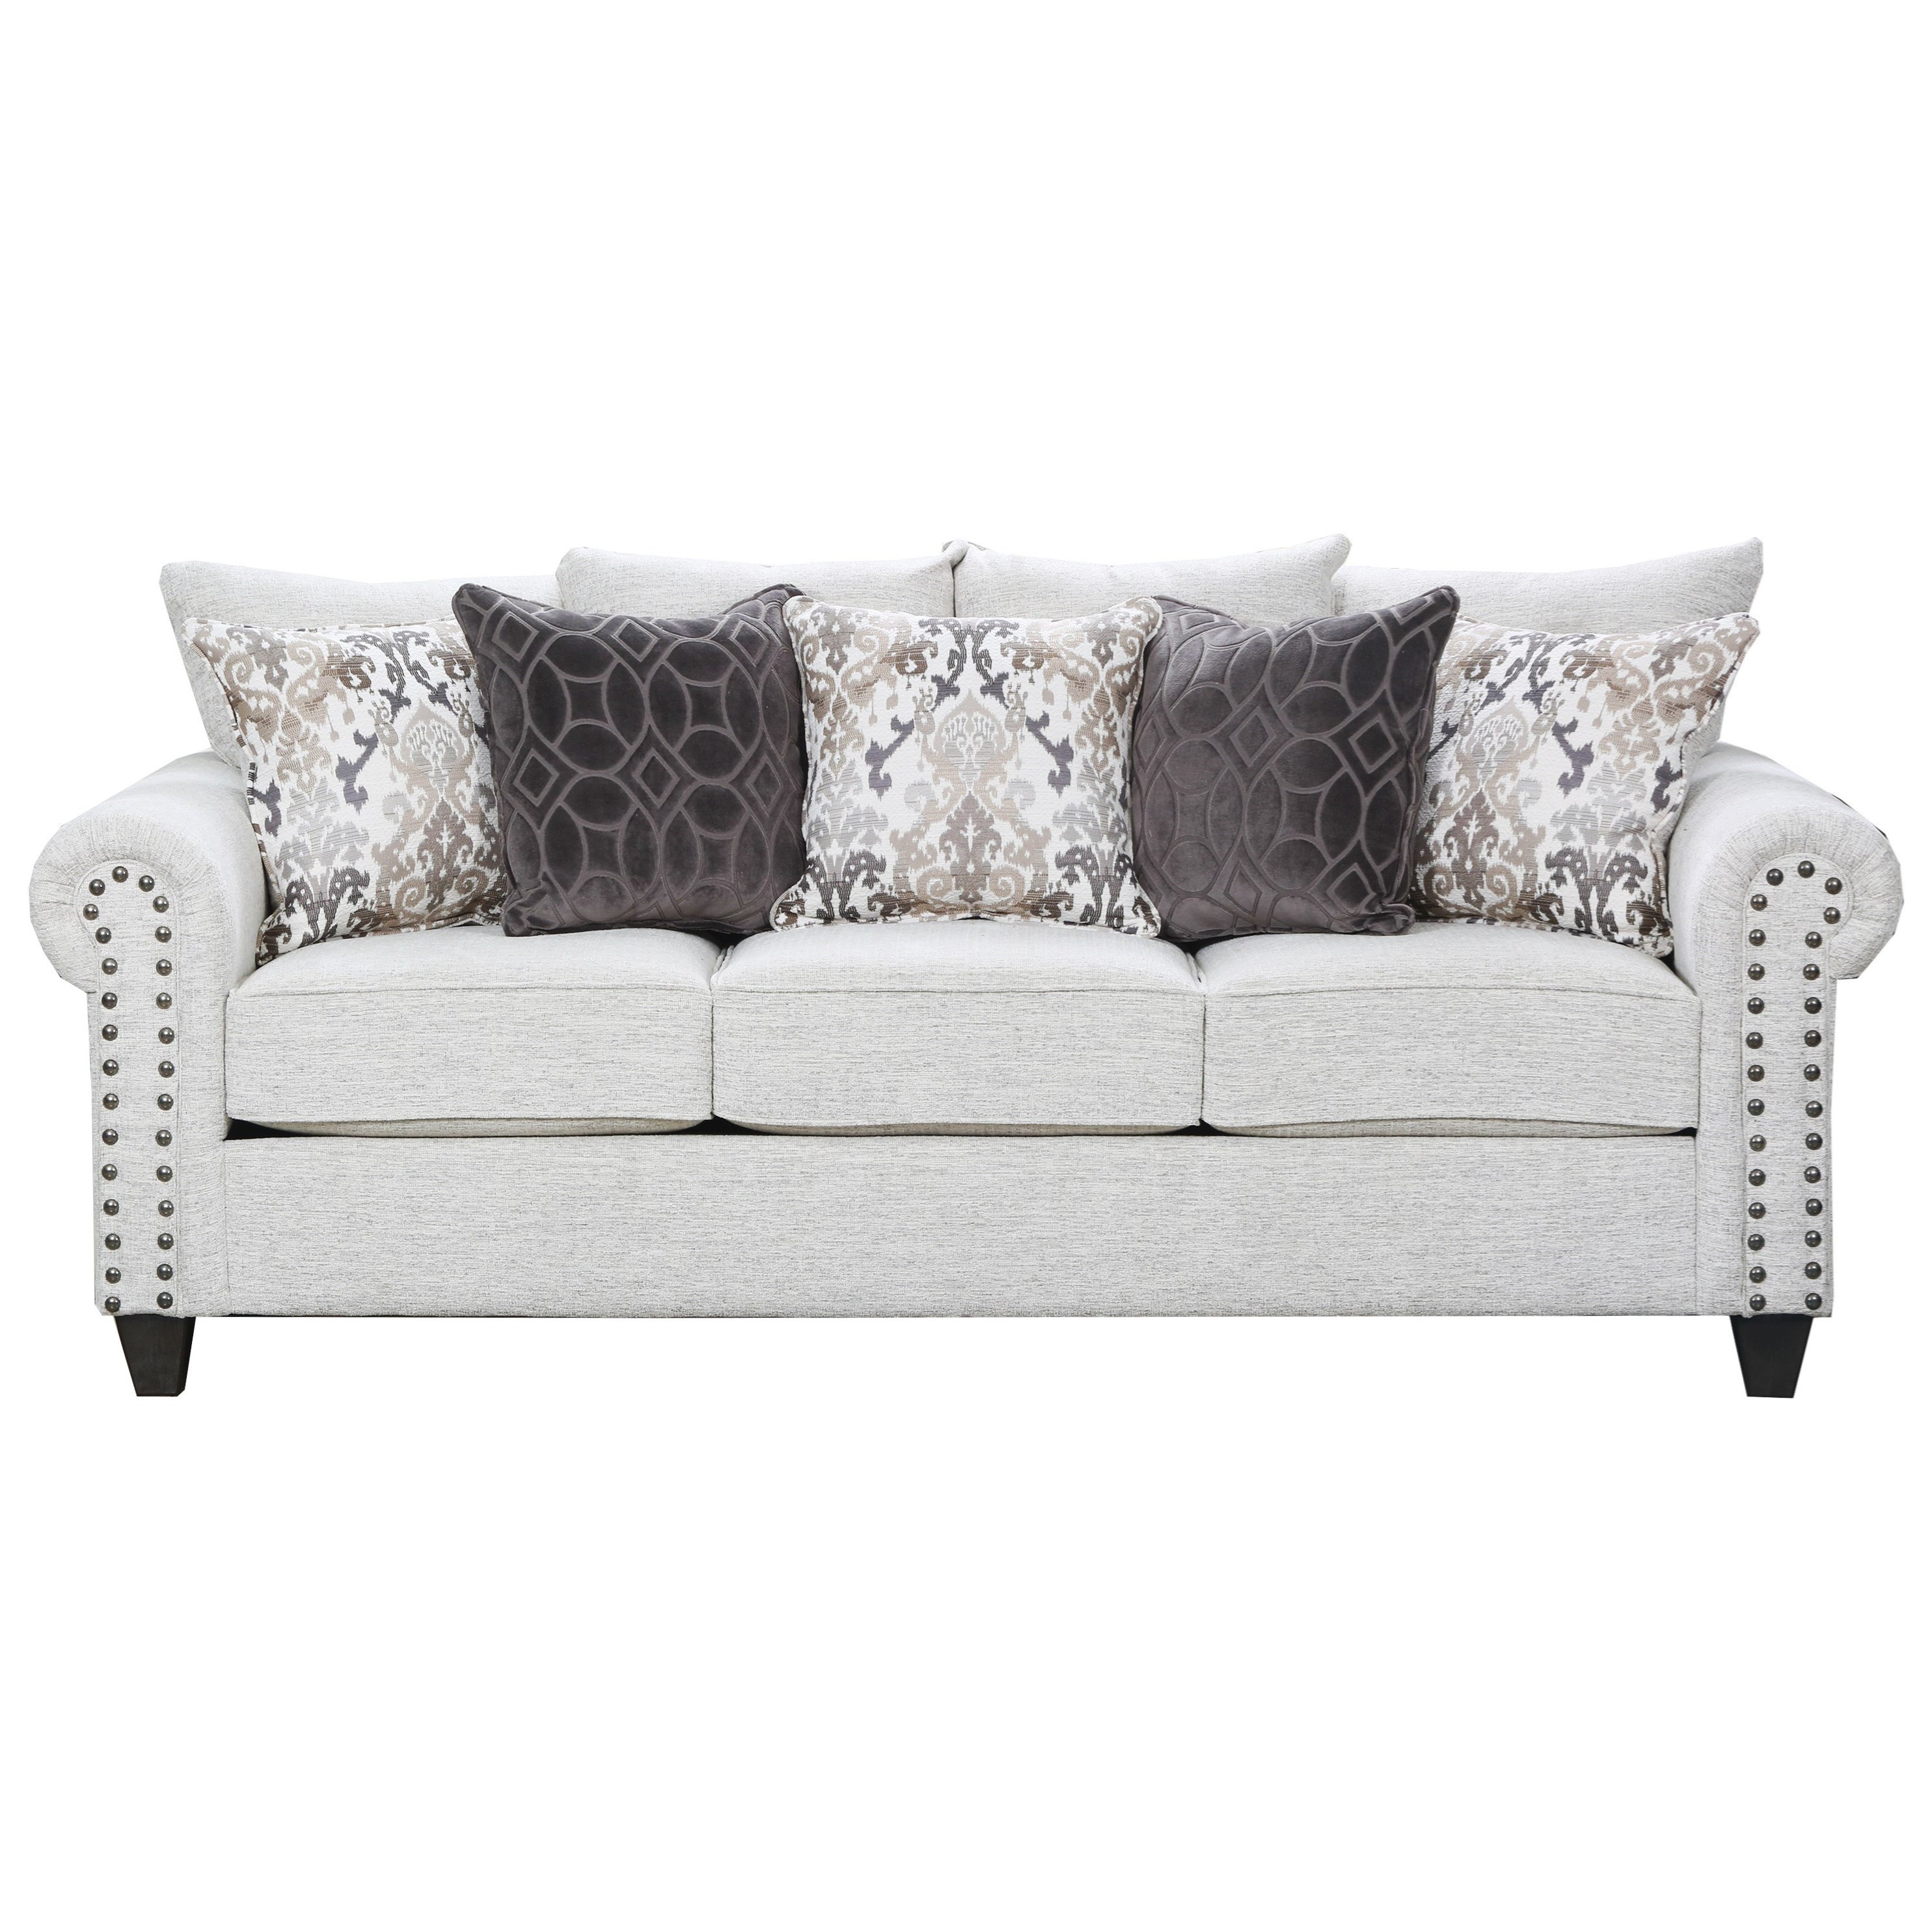 9175BR Sofa Sleeper by United Furniture Industries at Dream Home Interiors